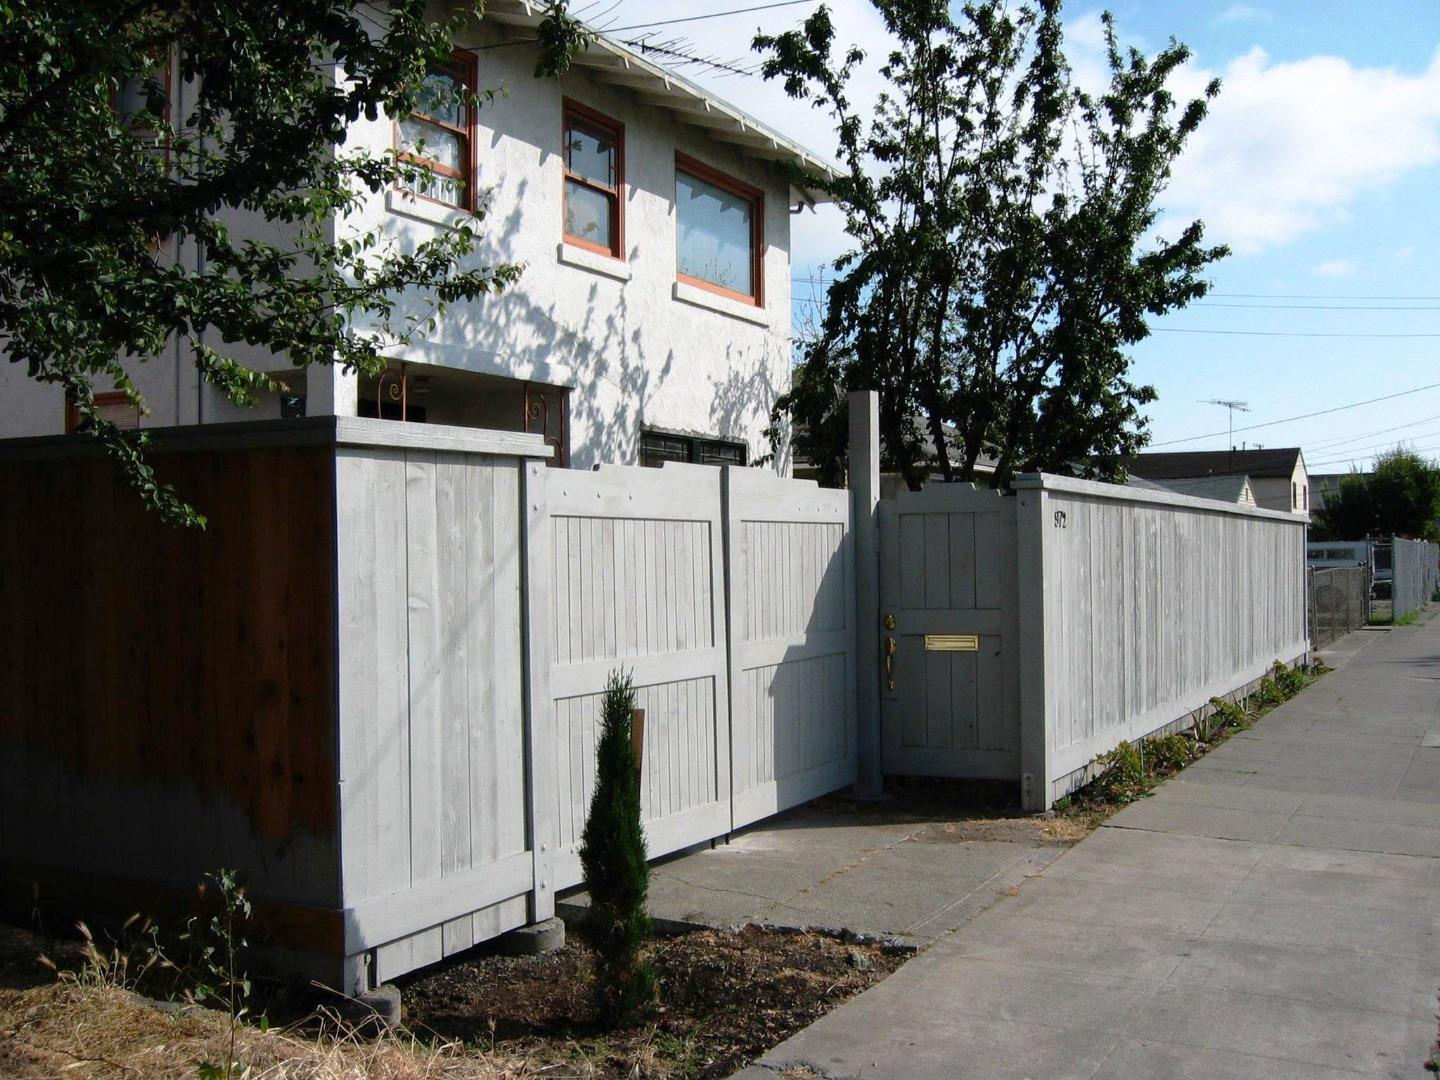 Image not available for 972 75th Avenue, Oakland CA, 94621